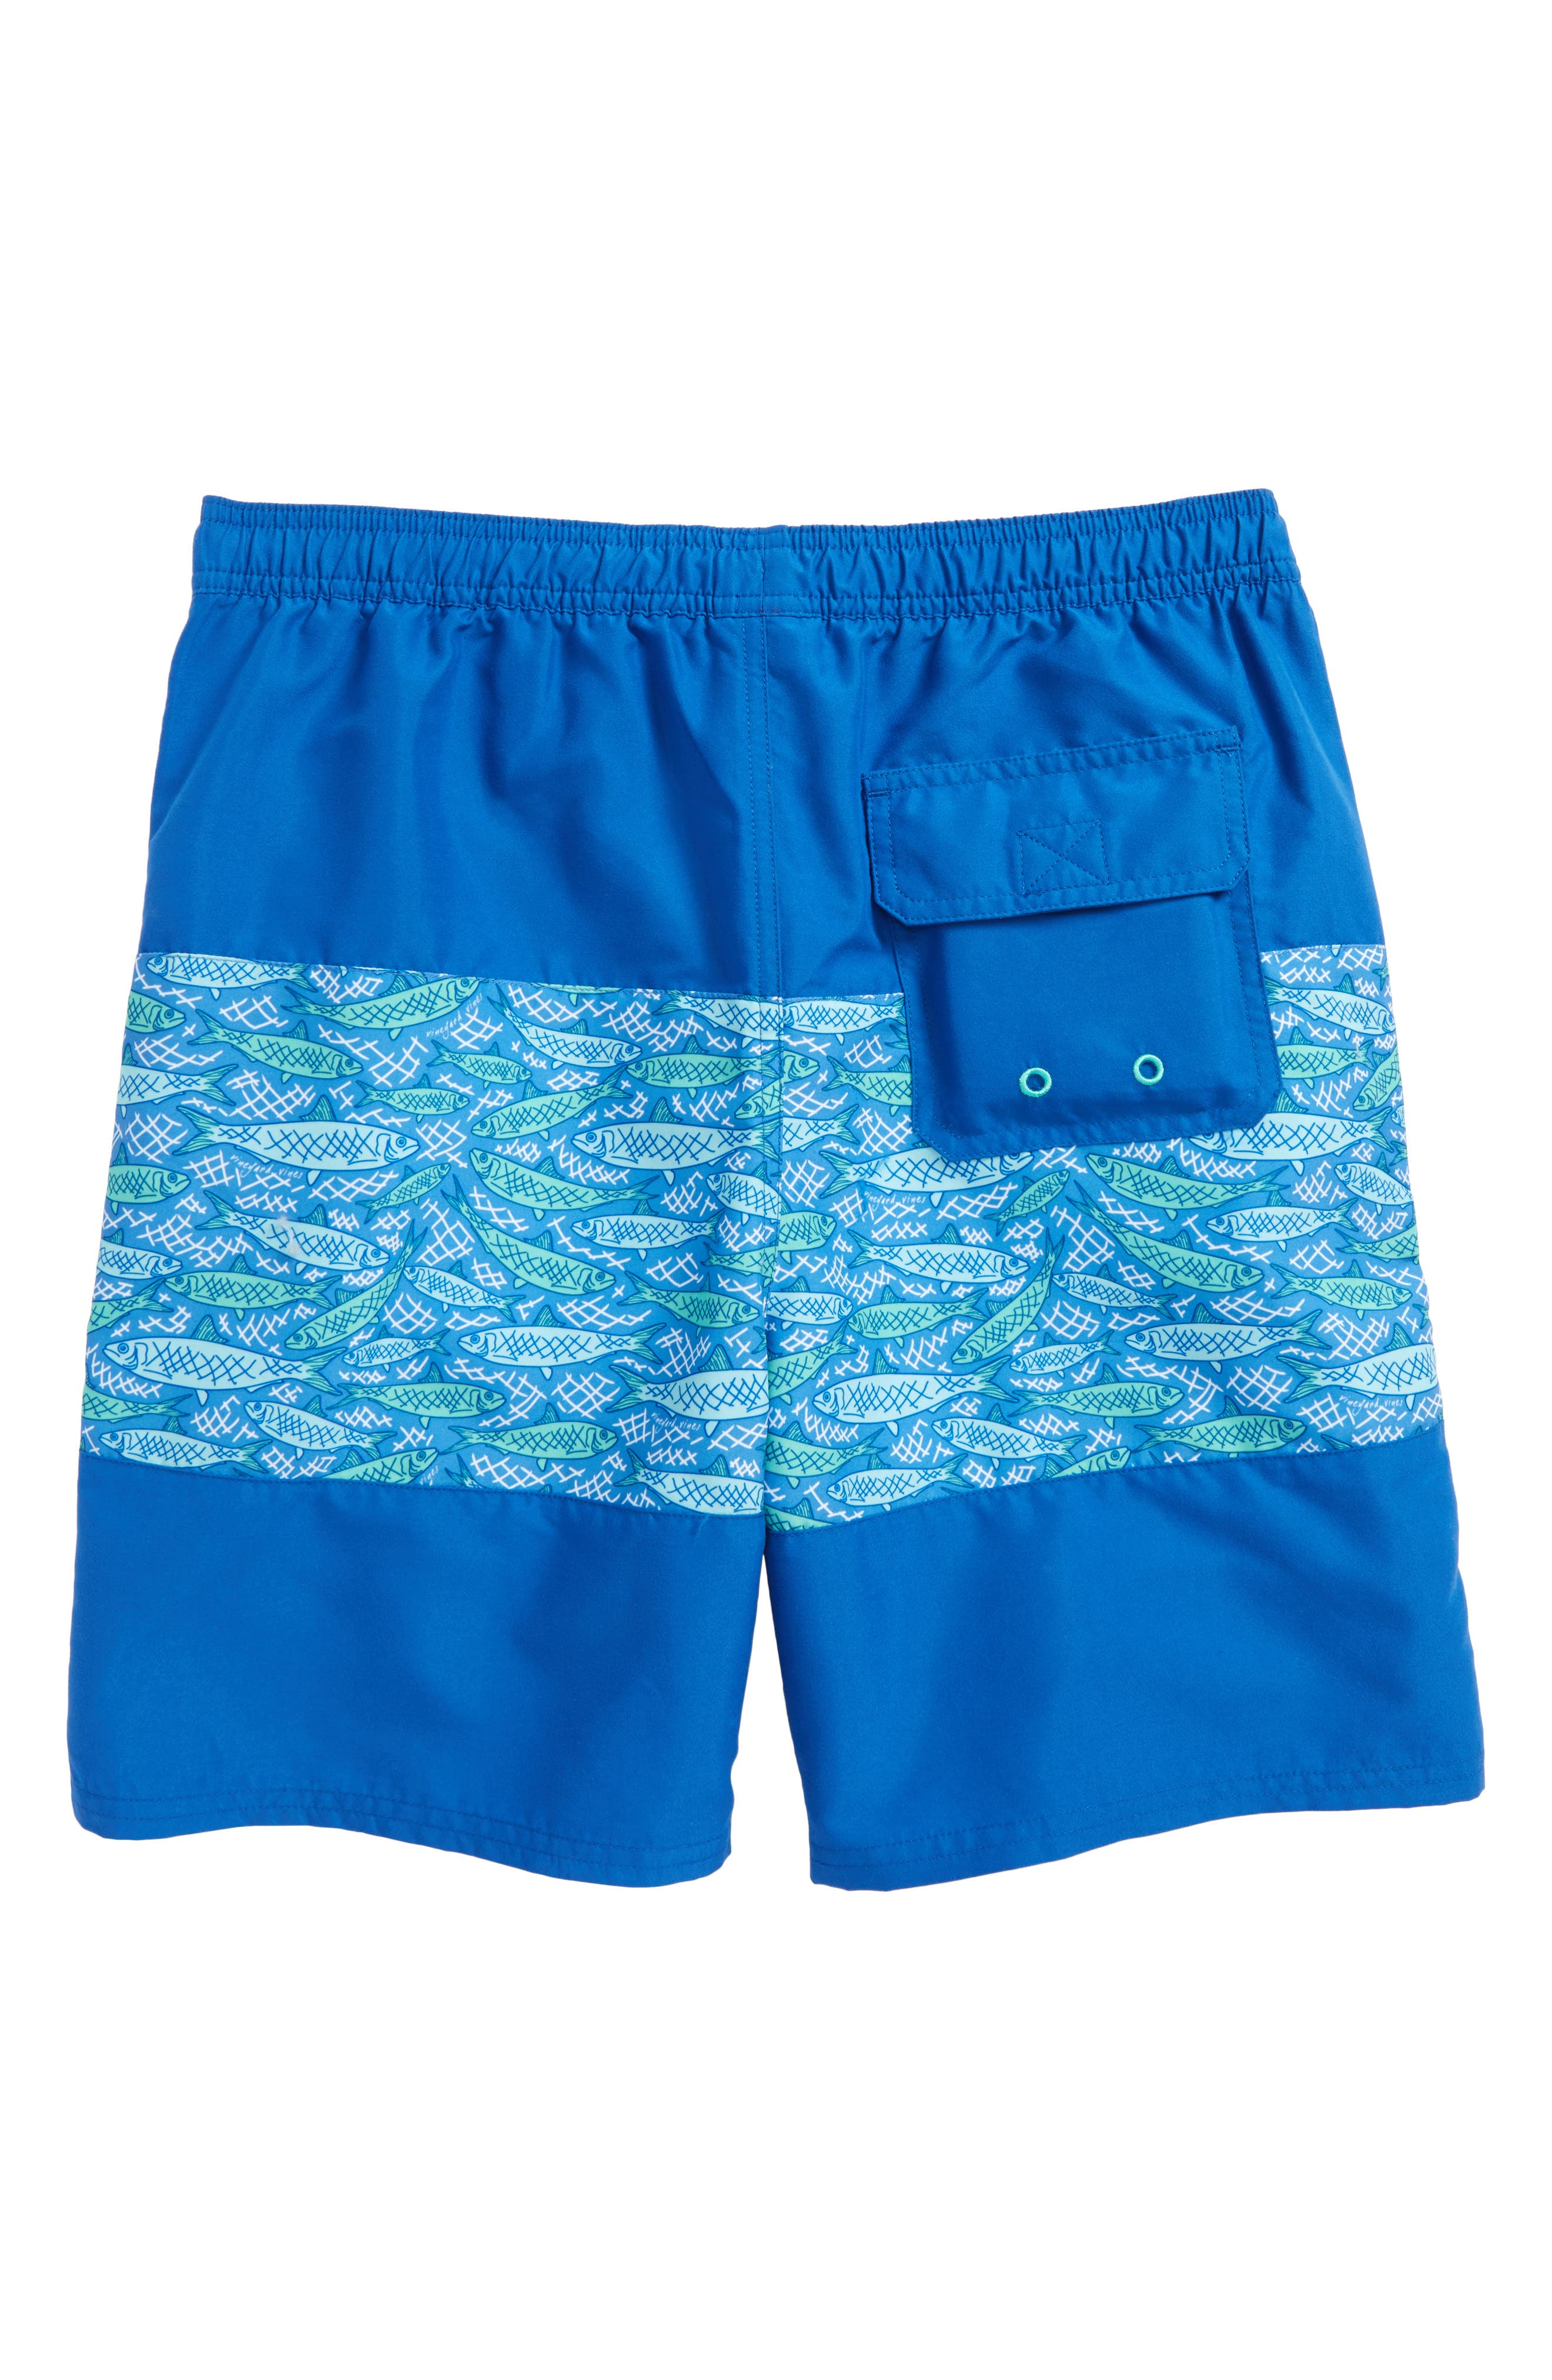 Fish Scale Chappy Swim Trunks,                             Alternate thumbnail 2, color,